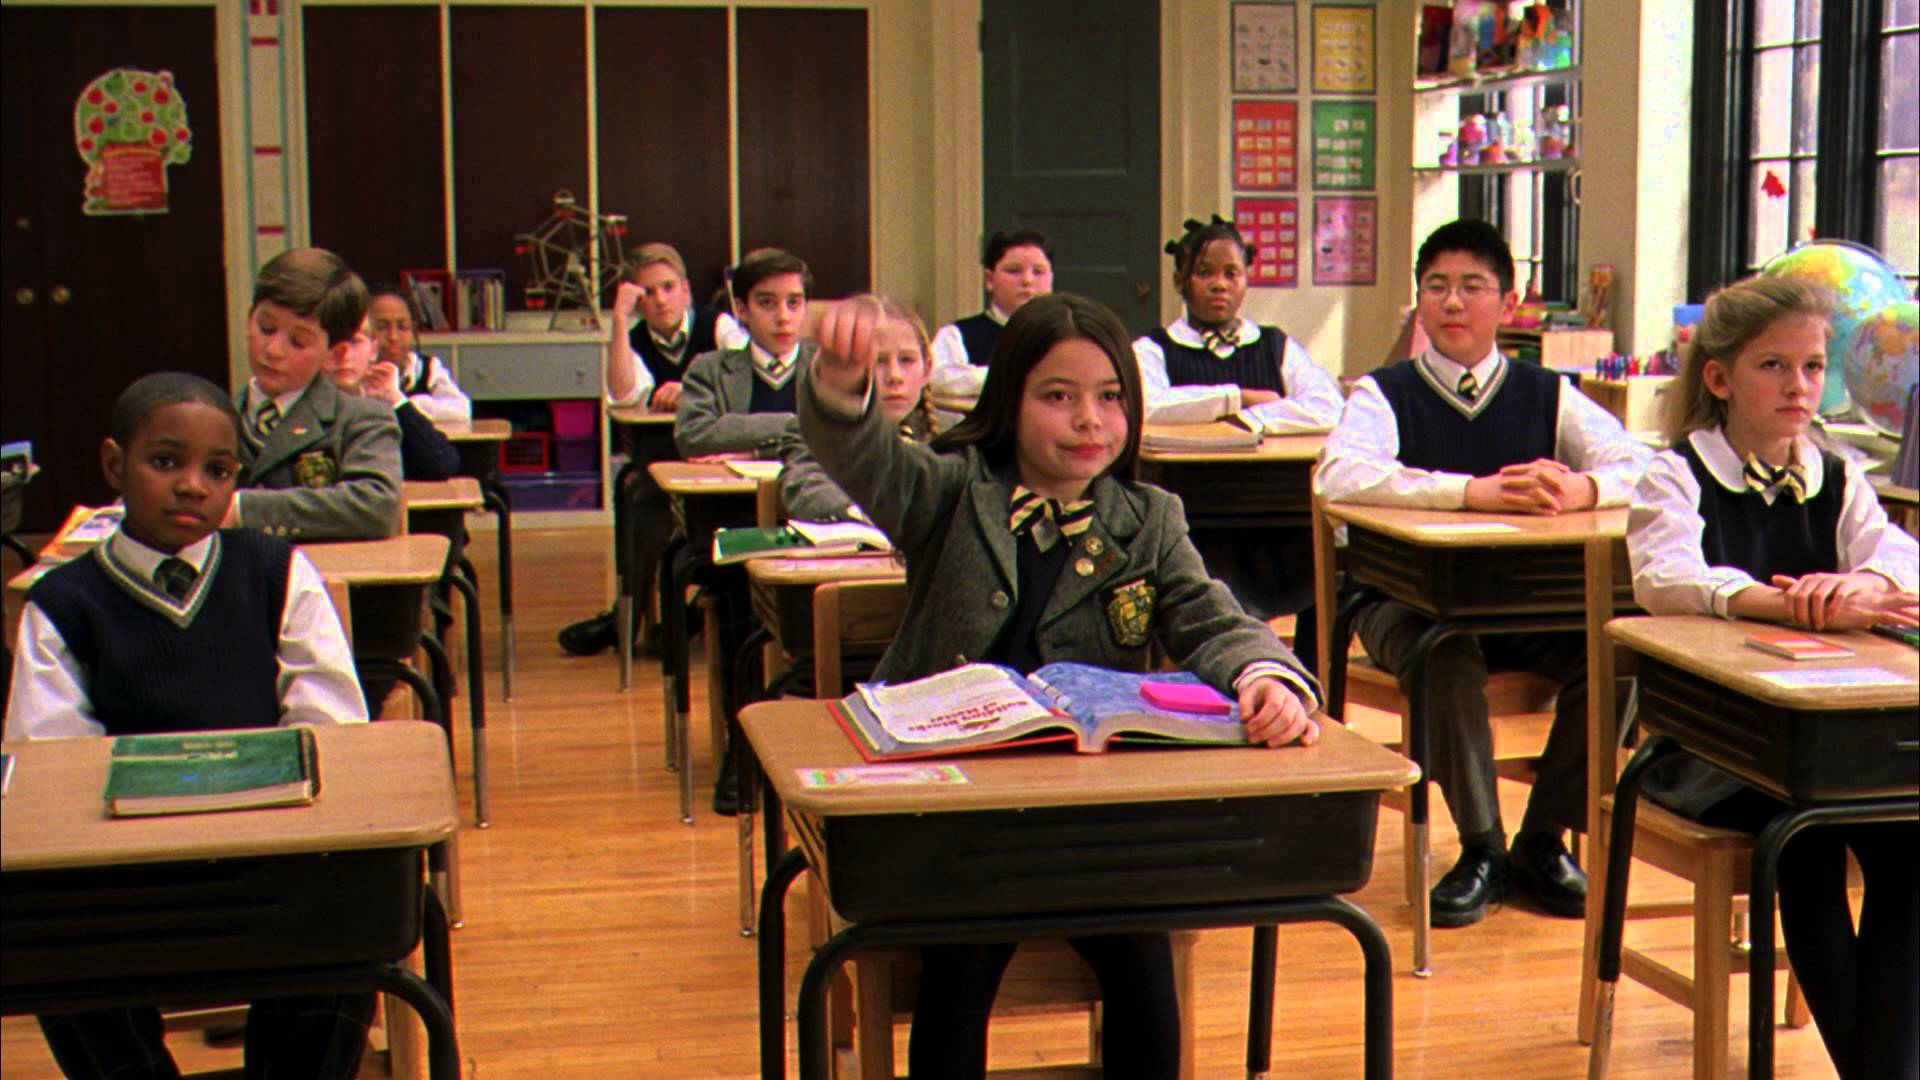 Students in classroom in Linklater's School of Rock